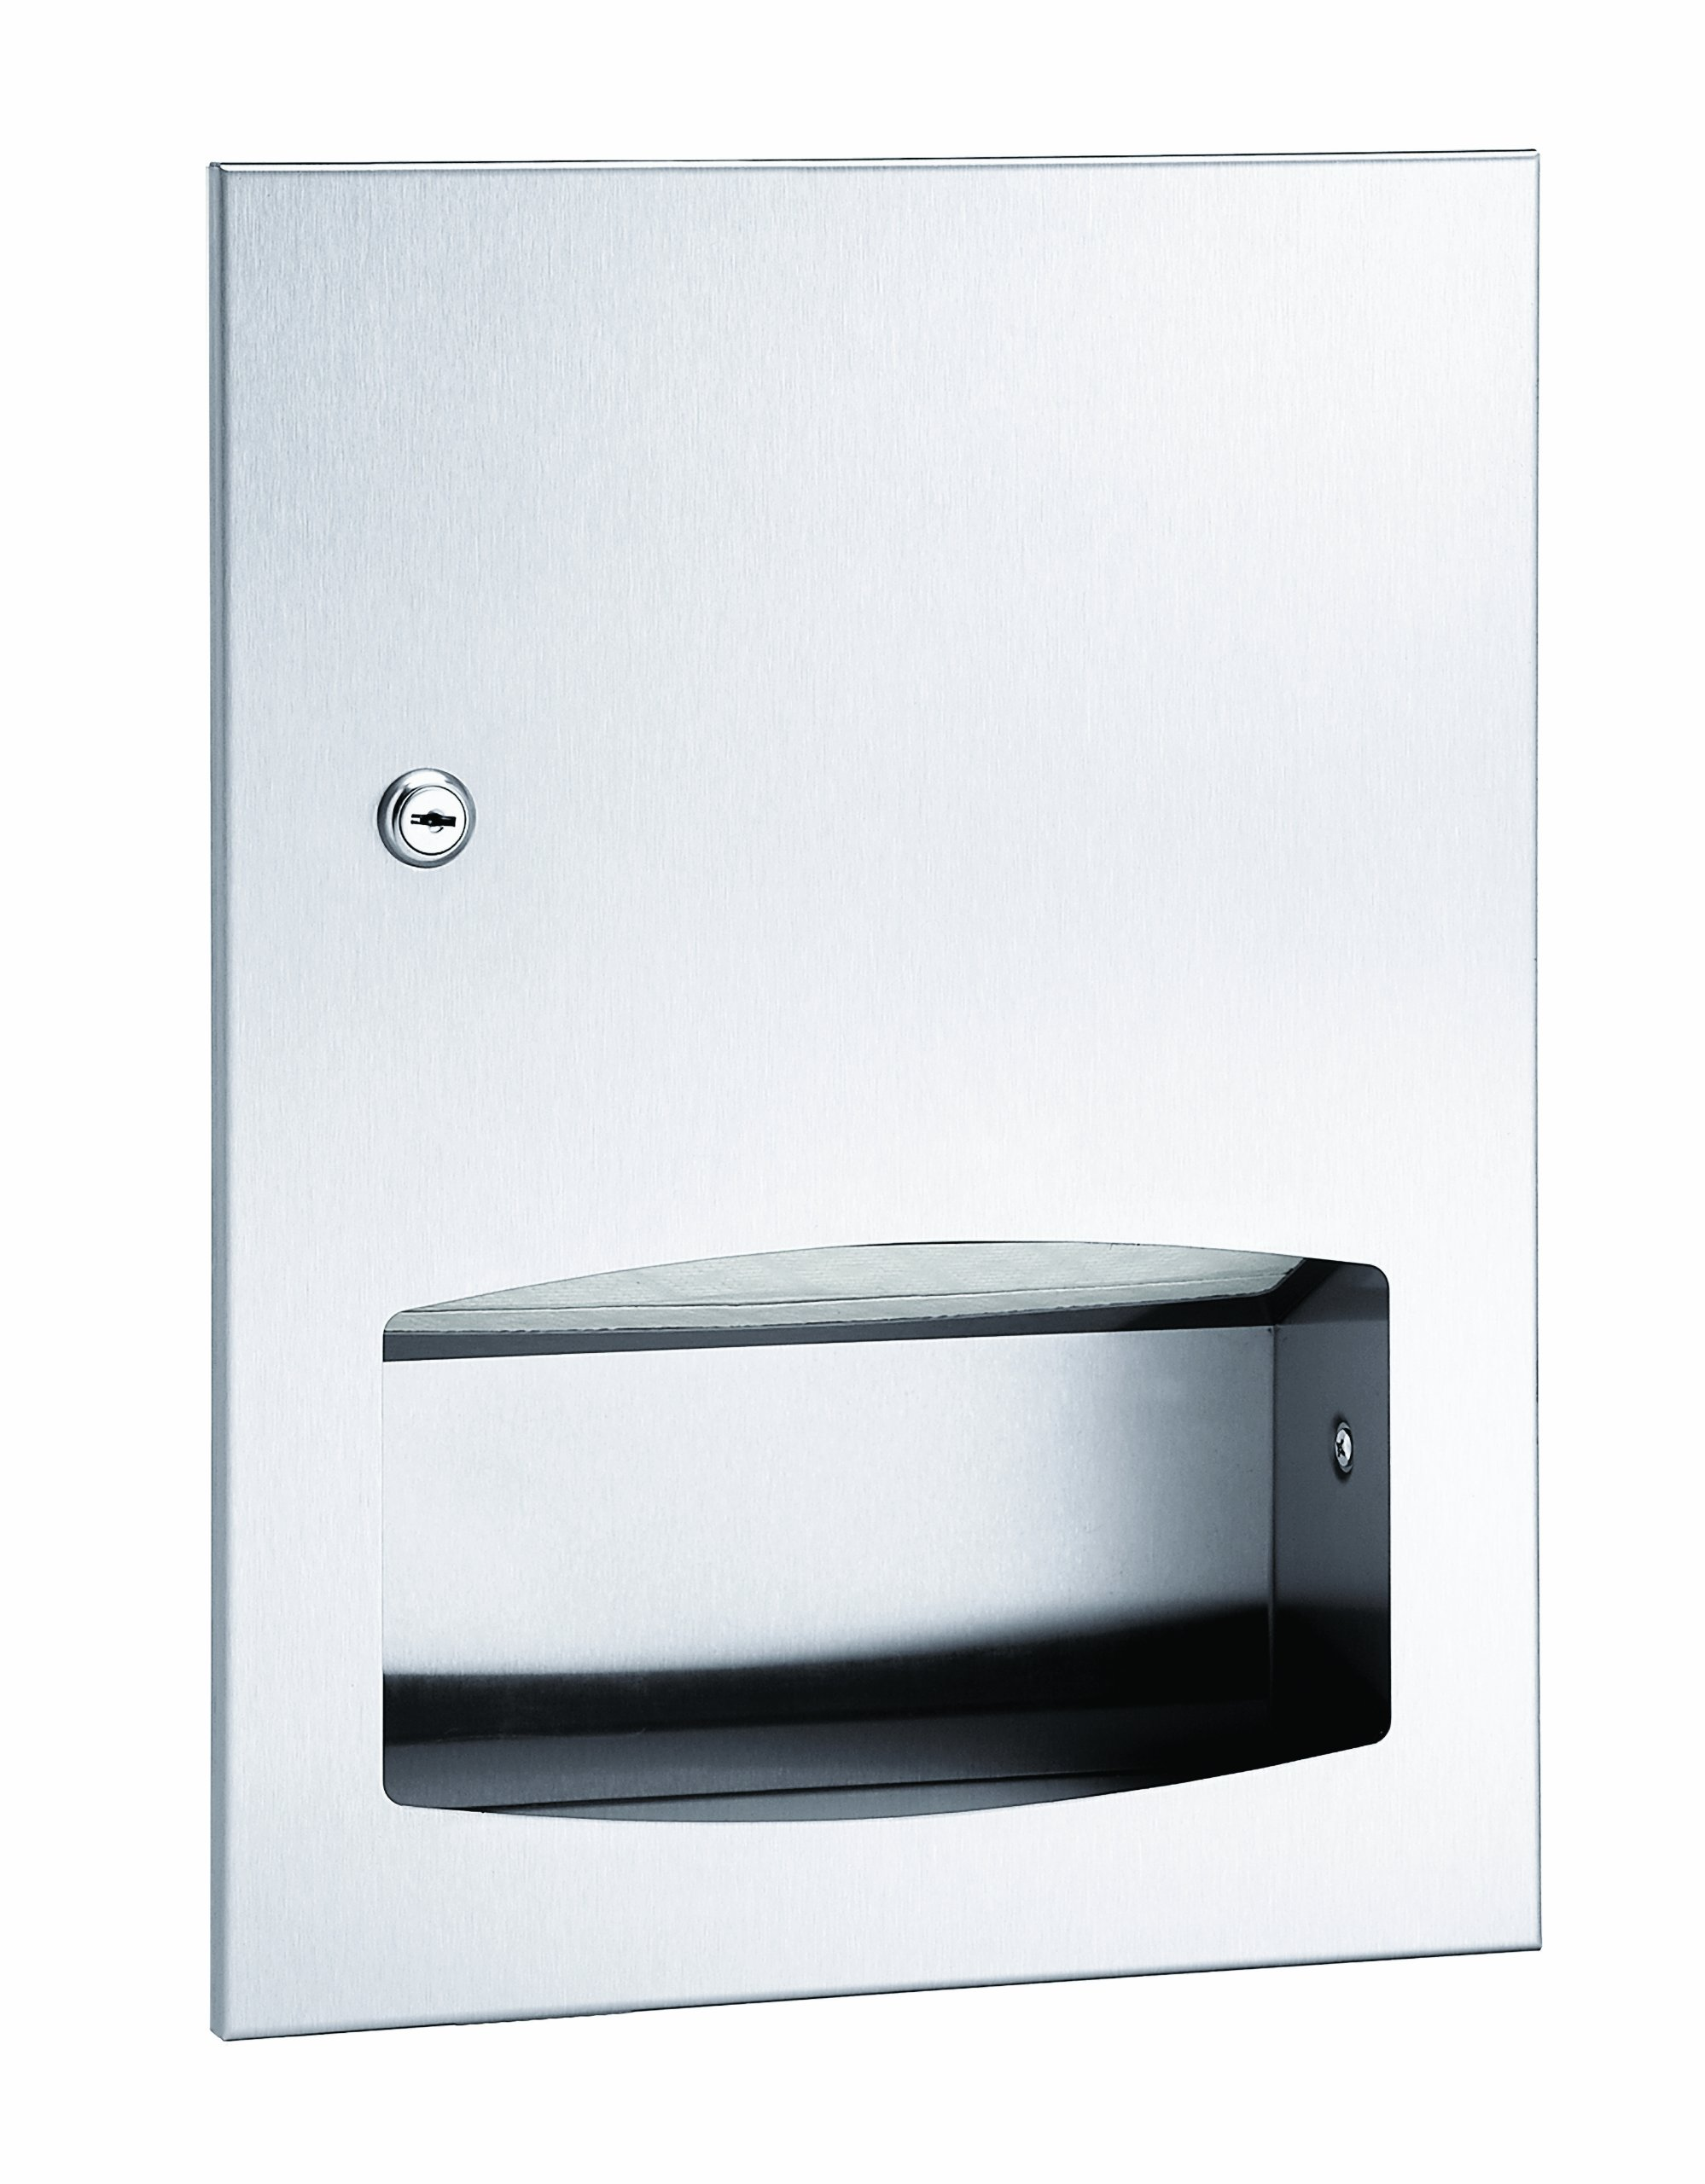 Bradley 2442-000000 Contemporary Stainless Steel Low Capacity Recessed Towel Dispenser, 13 Width x 17-3/8 Height x 4-1/8 Depth